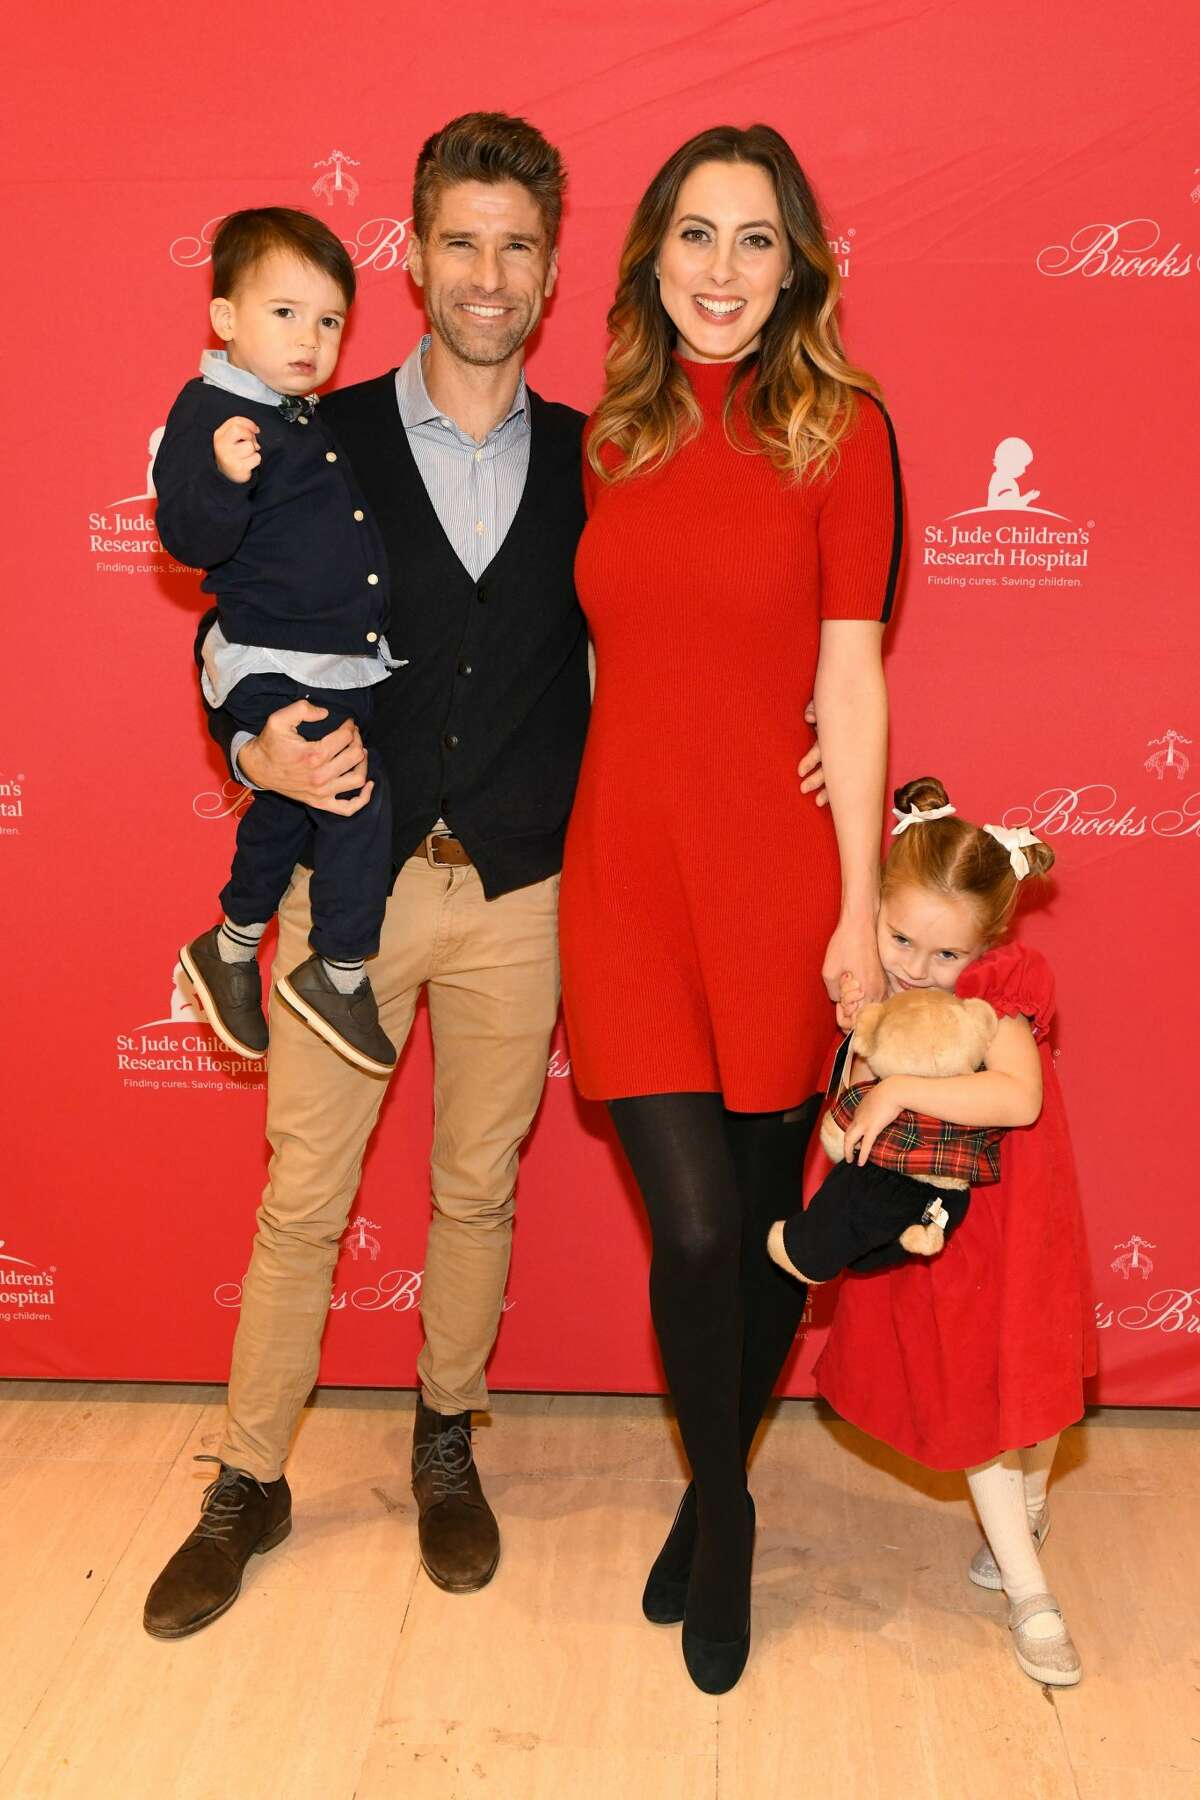 NEW YORK, NY - DECEMBER 18: Kyle Martino and Eva Amurri Martino (C) attend the Brooks Brothers And St Jude Children's Research Hospital Annual Holiday Celebration In New York City on December 18, 2018 in New York City. (Photo by Craig Barritt/Getty Images for Brooks Brothers)